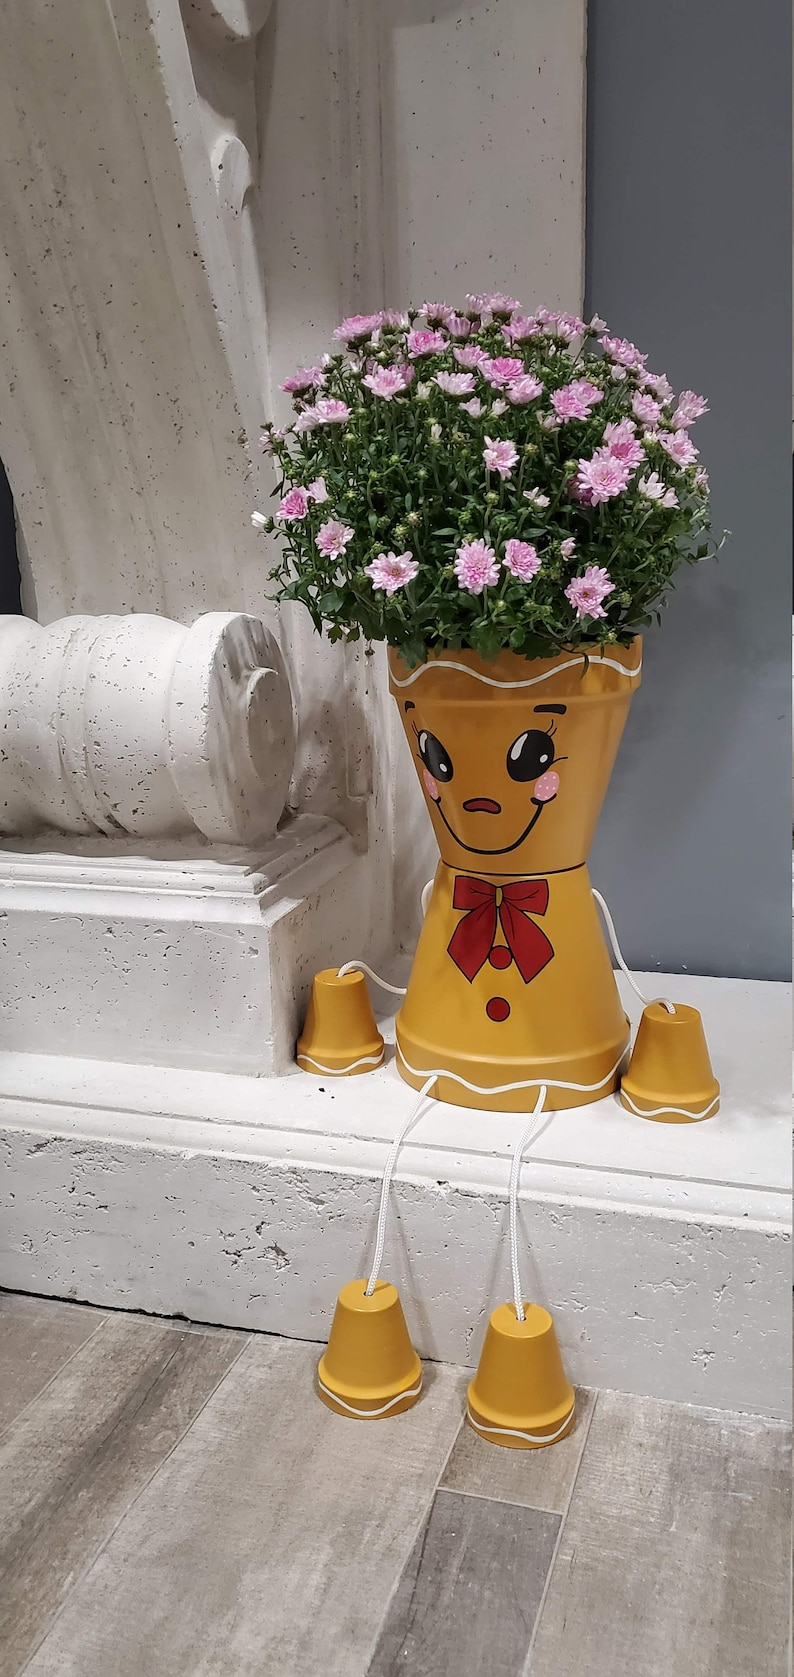 Christmas Gingerbread Man flower pot people home decoration image 0